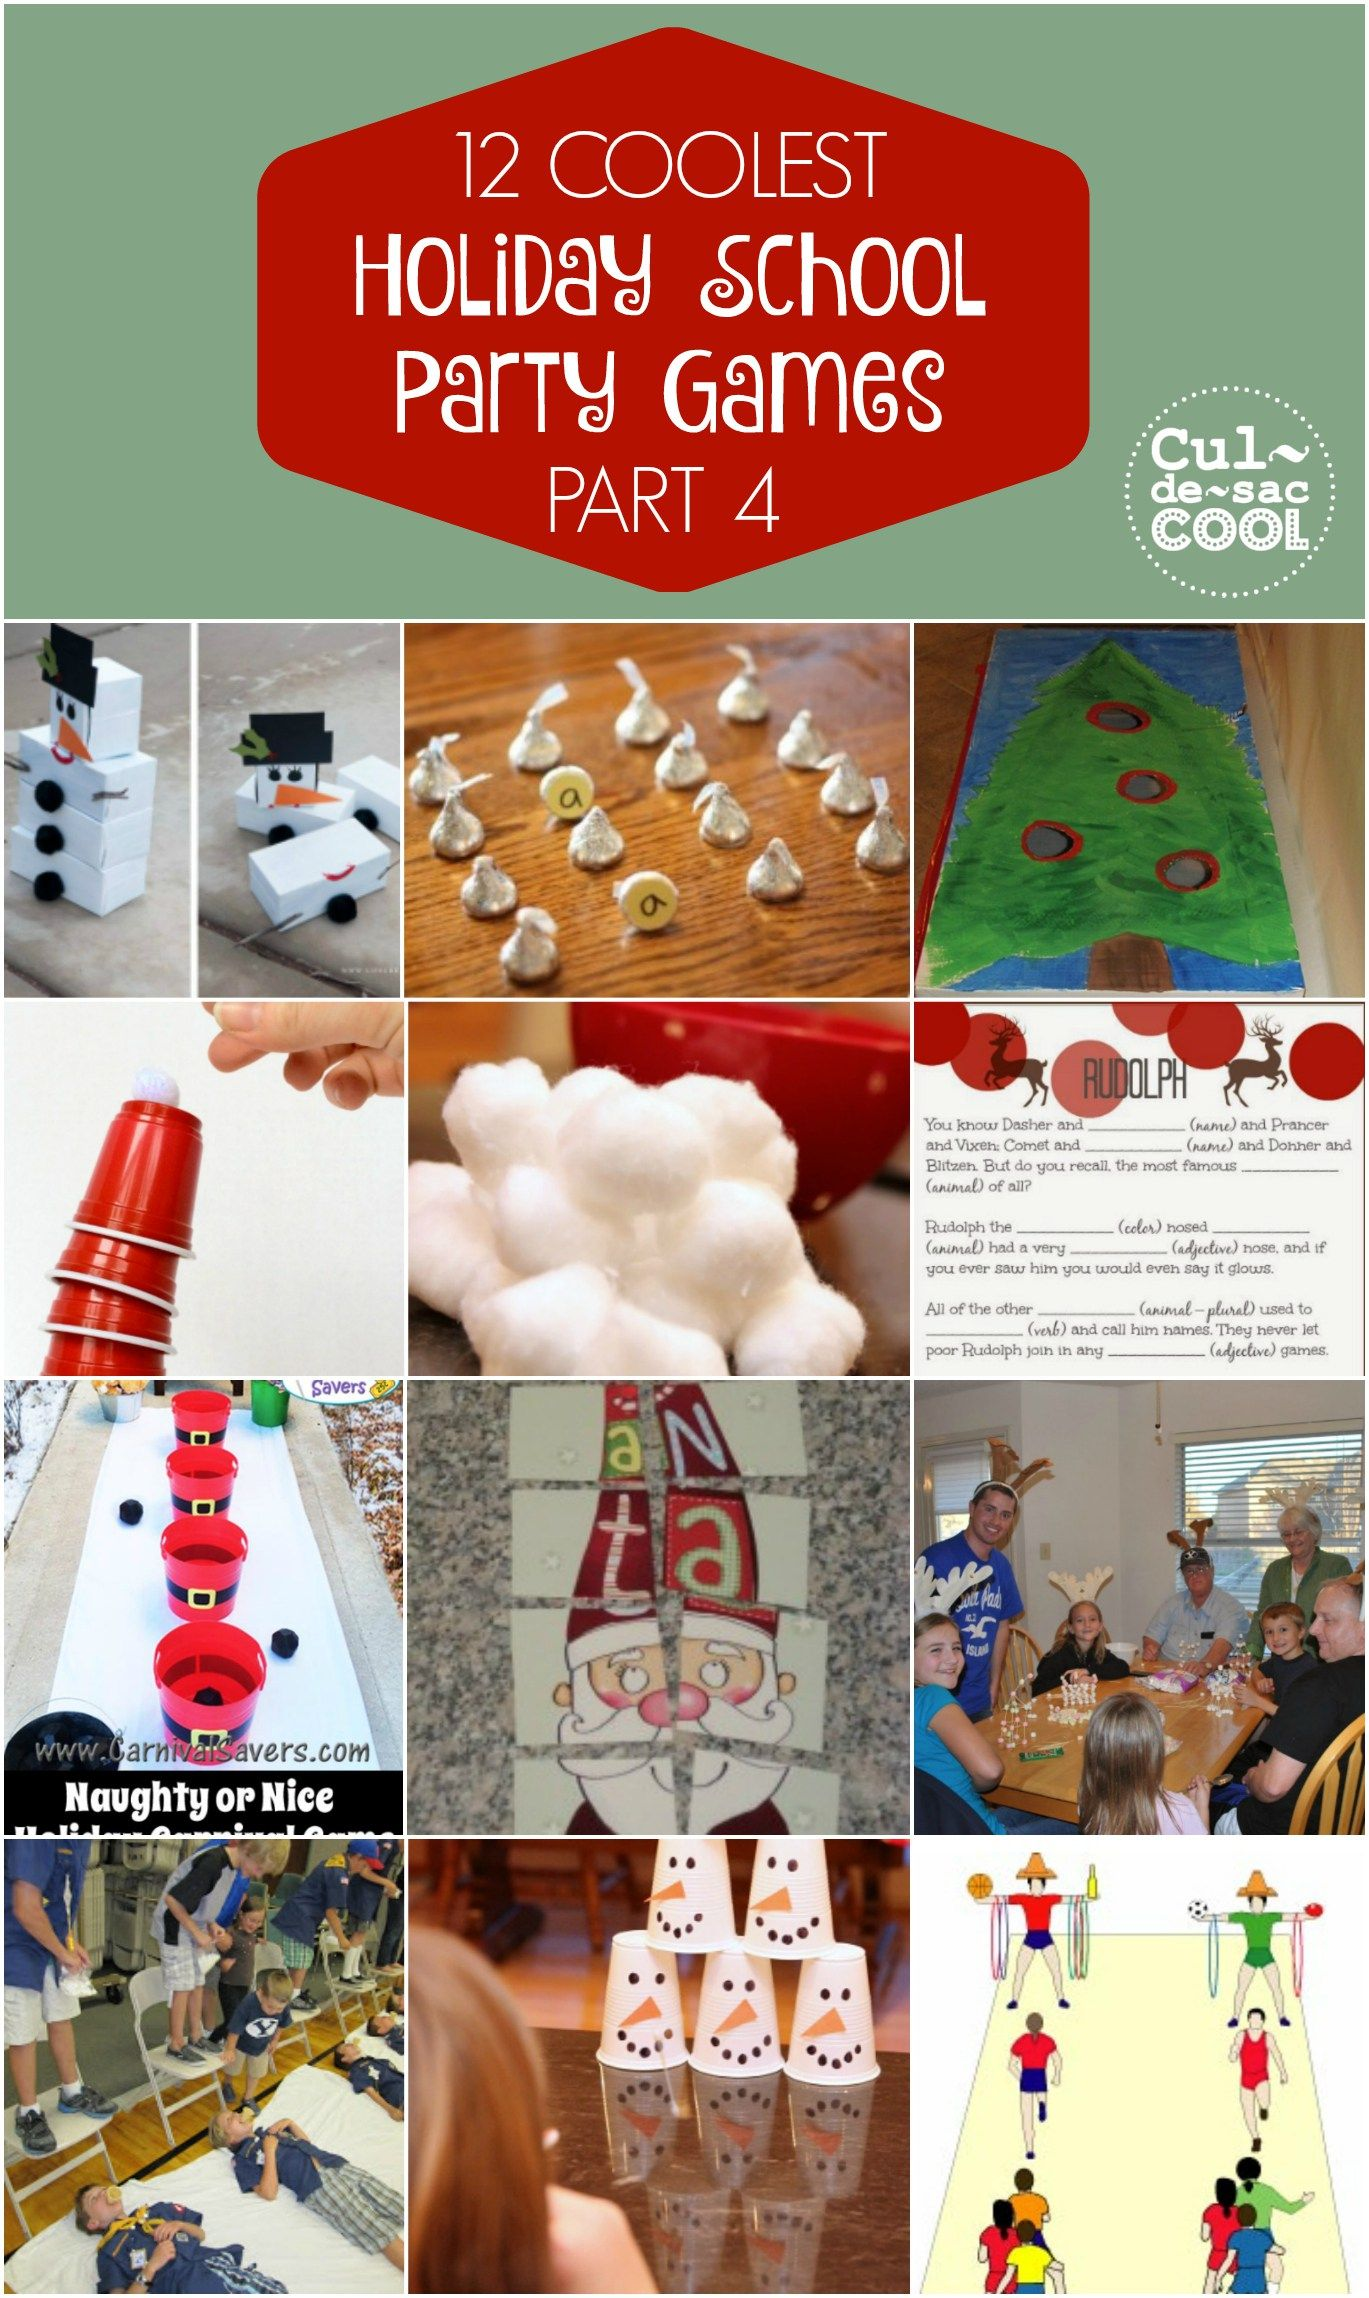 12 Coolest Holiday School Party Games Part 4collage